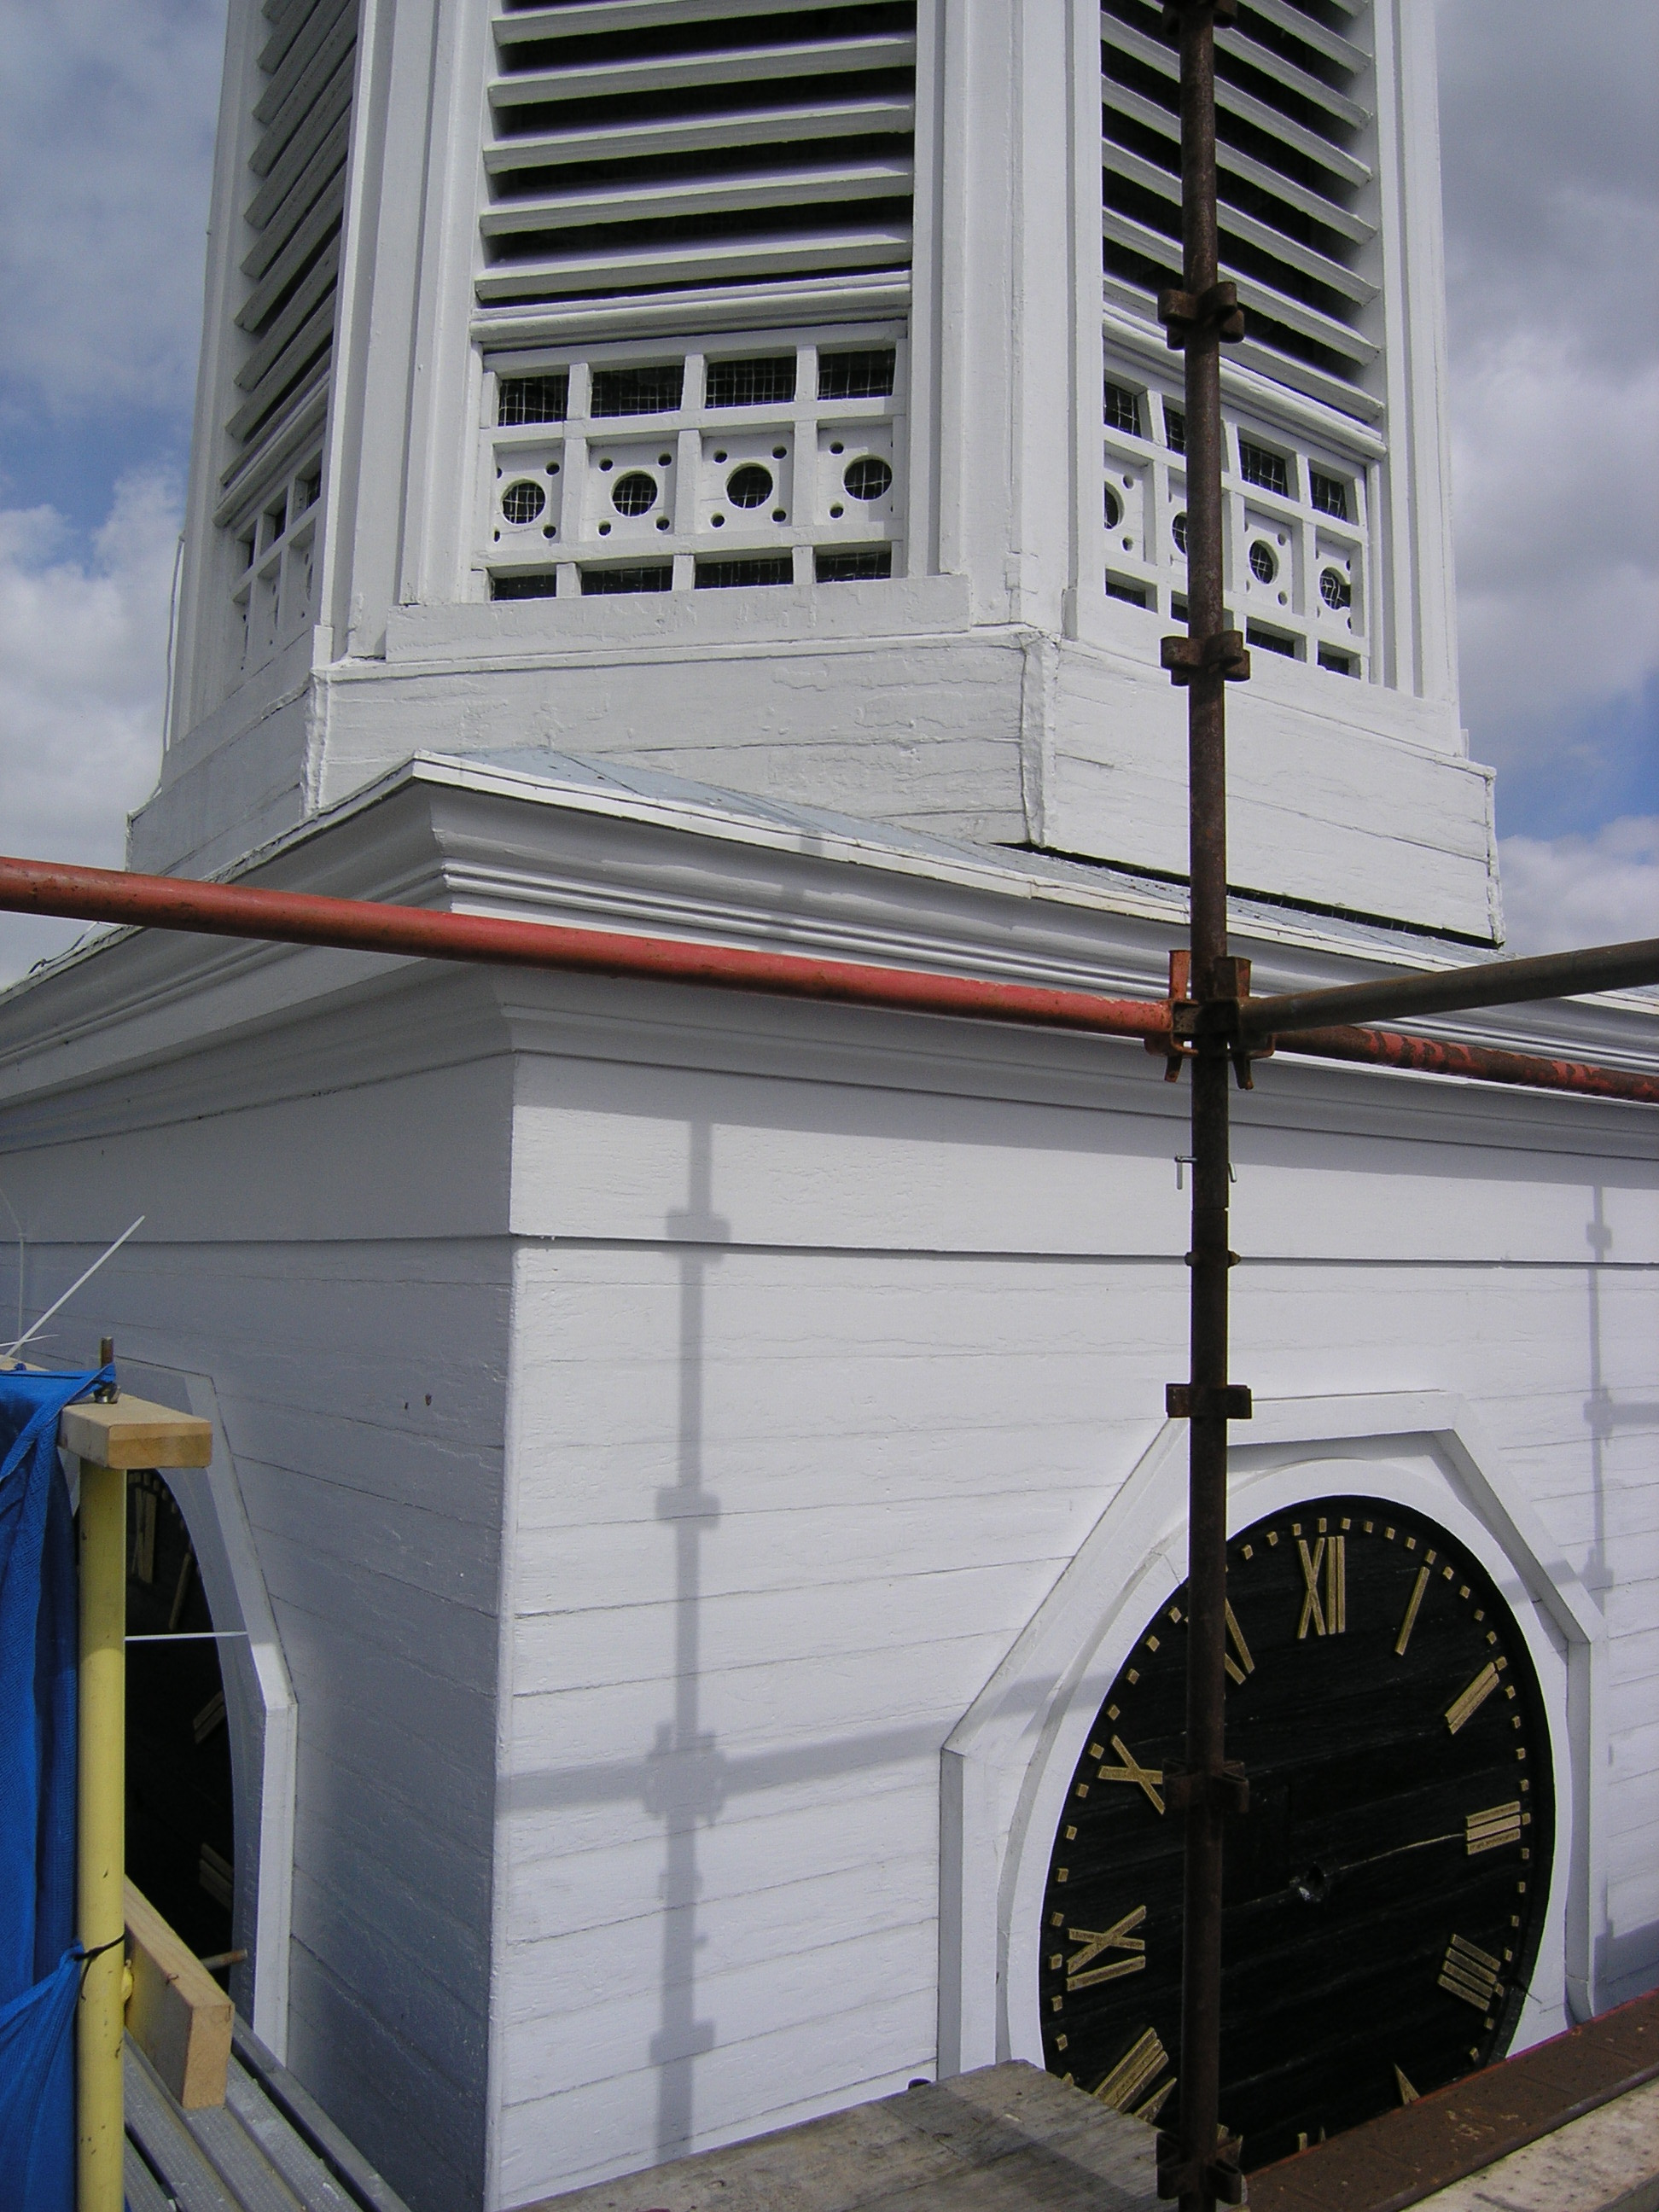 Belfry and Clock Tower